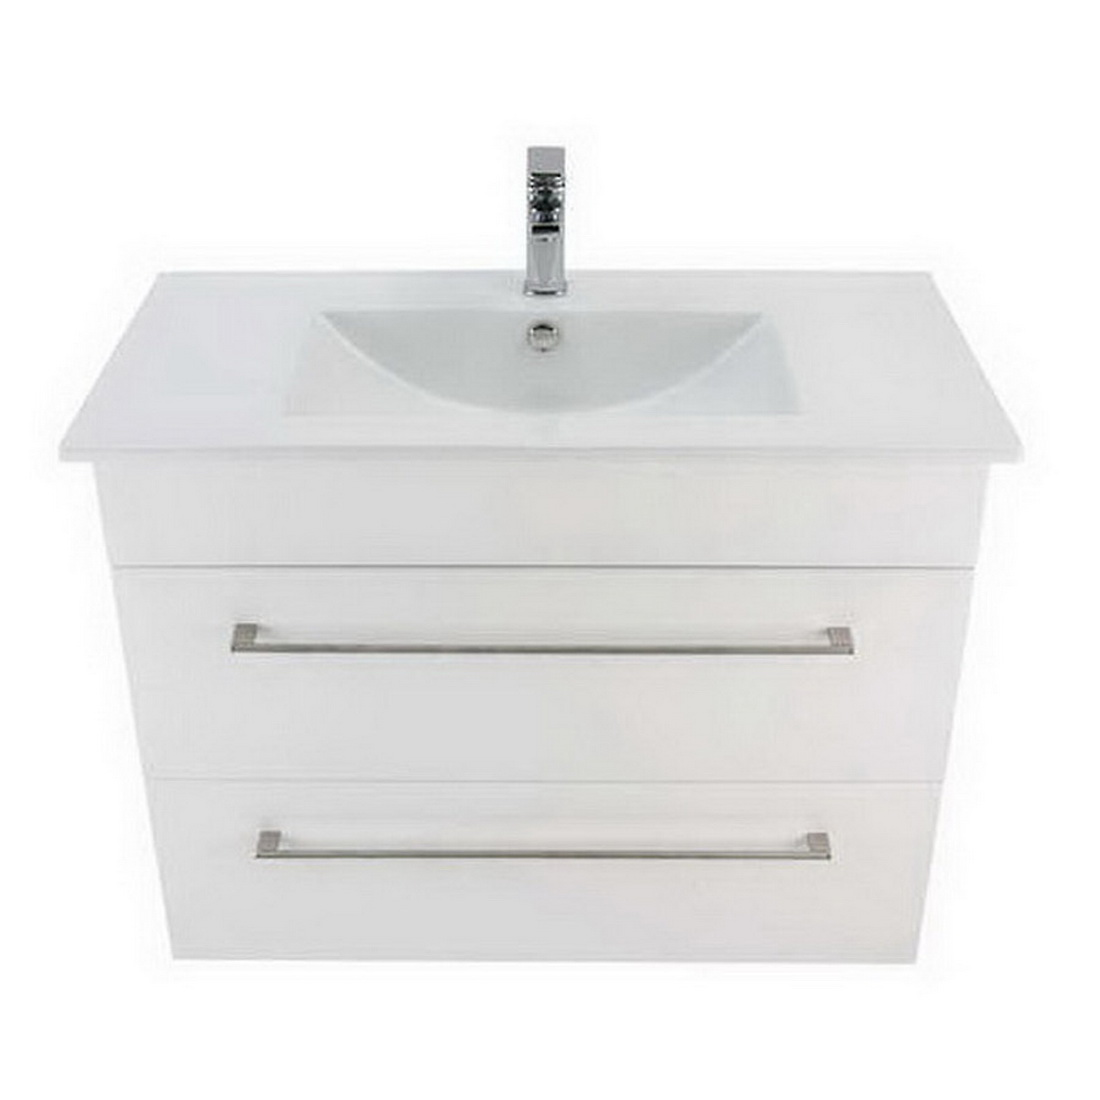 Montana Citi 2 Drawer Wall-Hung Vanity 900mm Gloss White